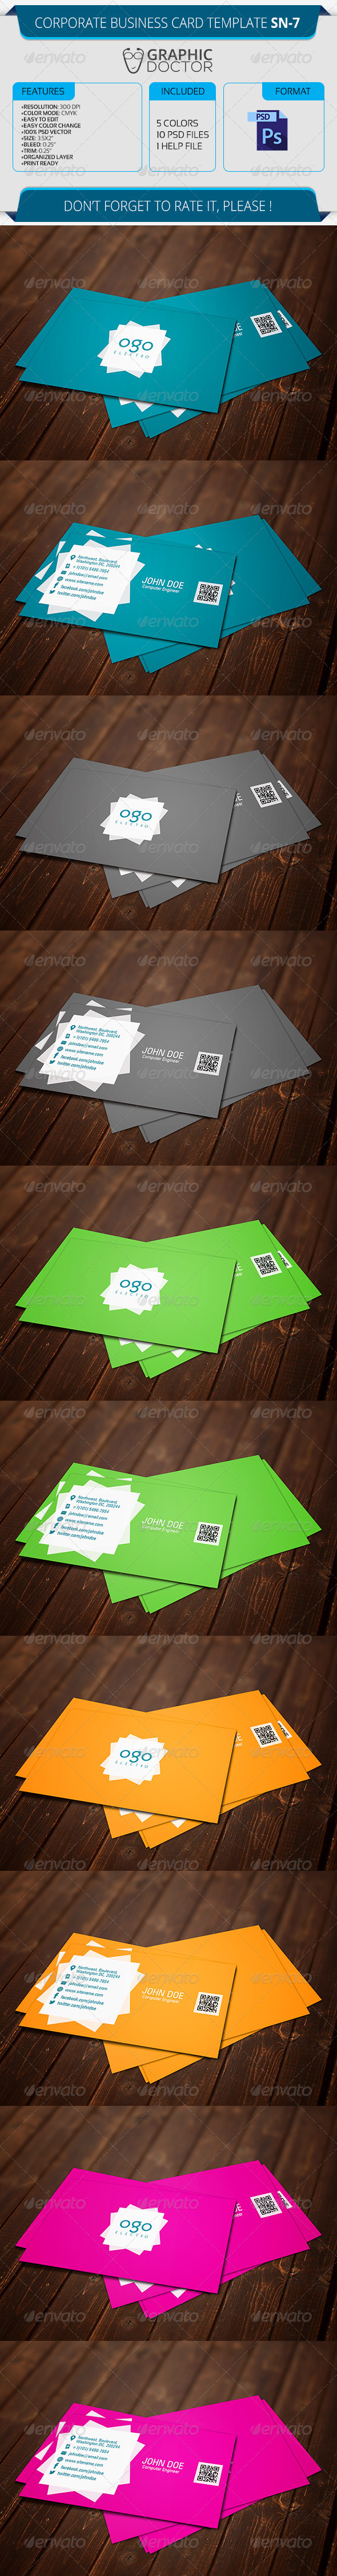 Corporate Business Card Template SN-7 - Corporate Business Cards